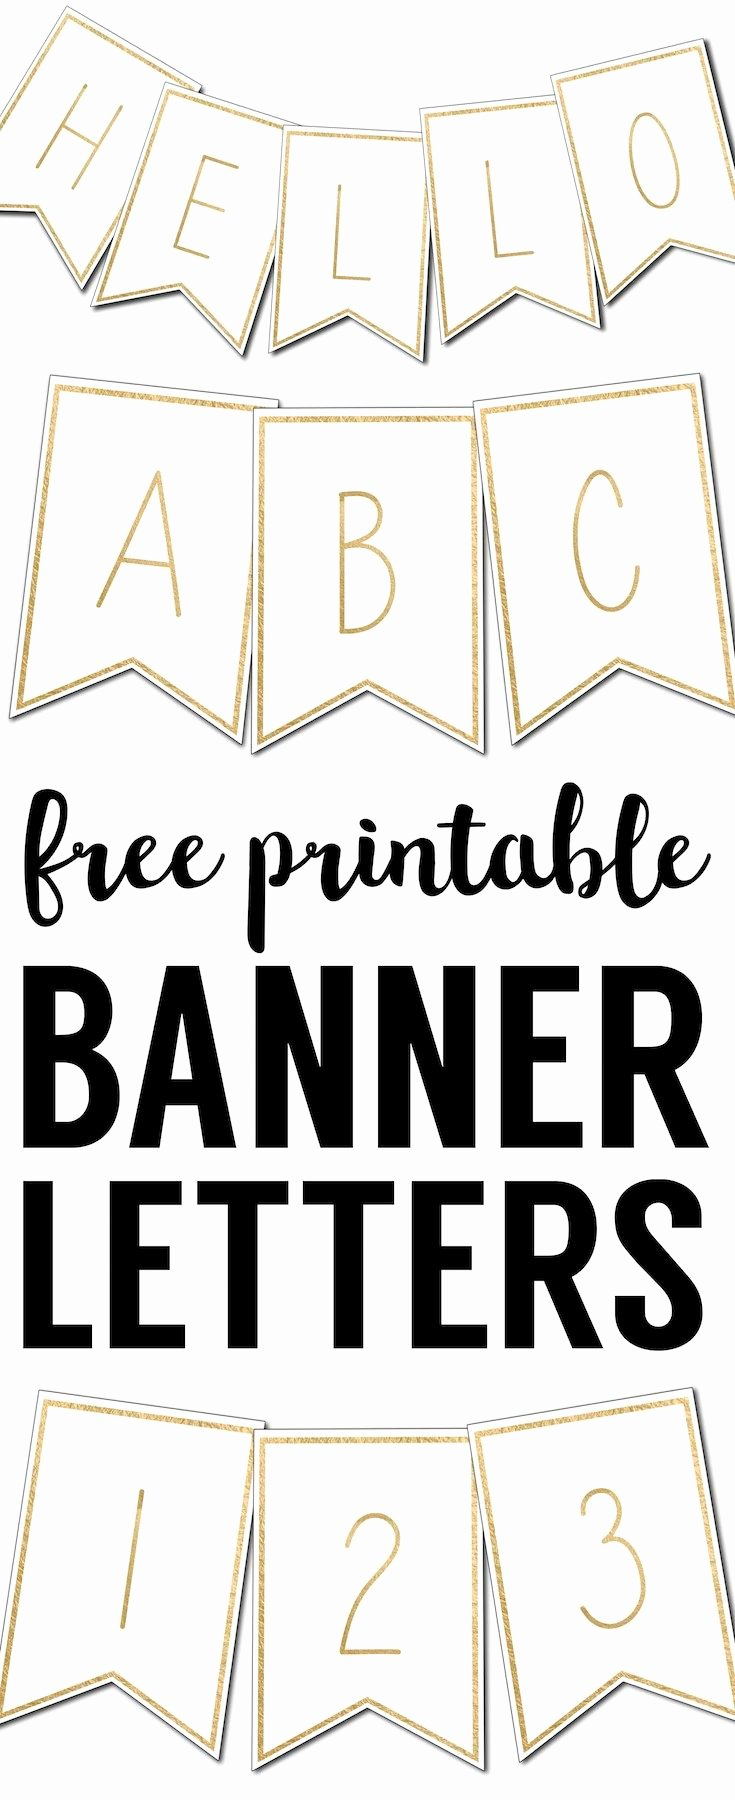 Banner Letters and Numbers Templates Inspirational Free Printable Banner Letters Templates